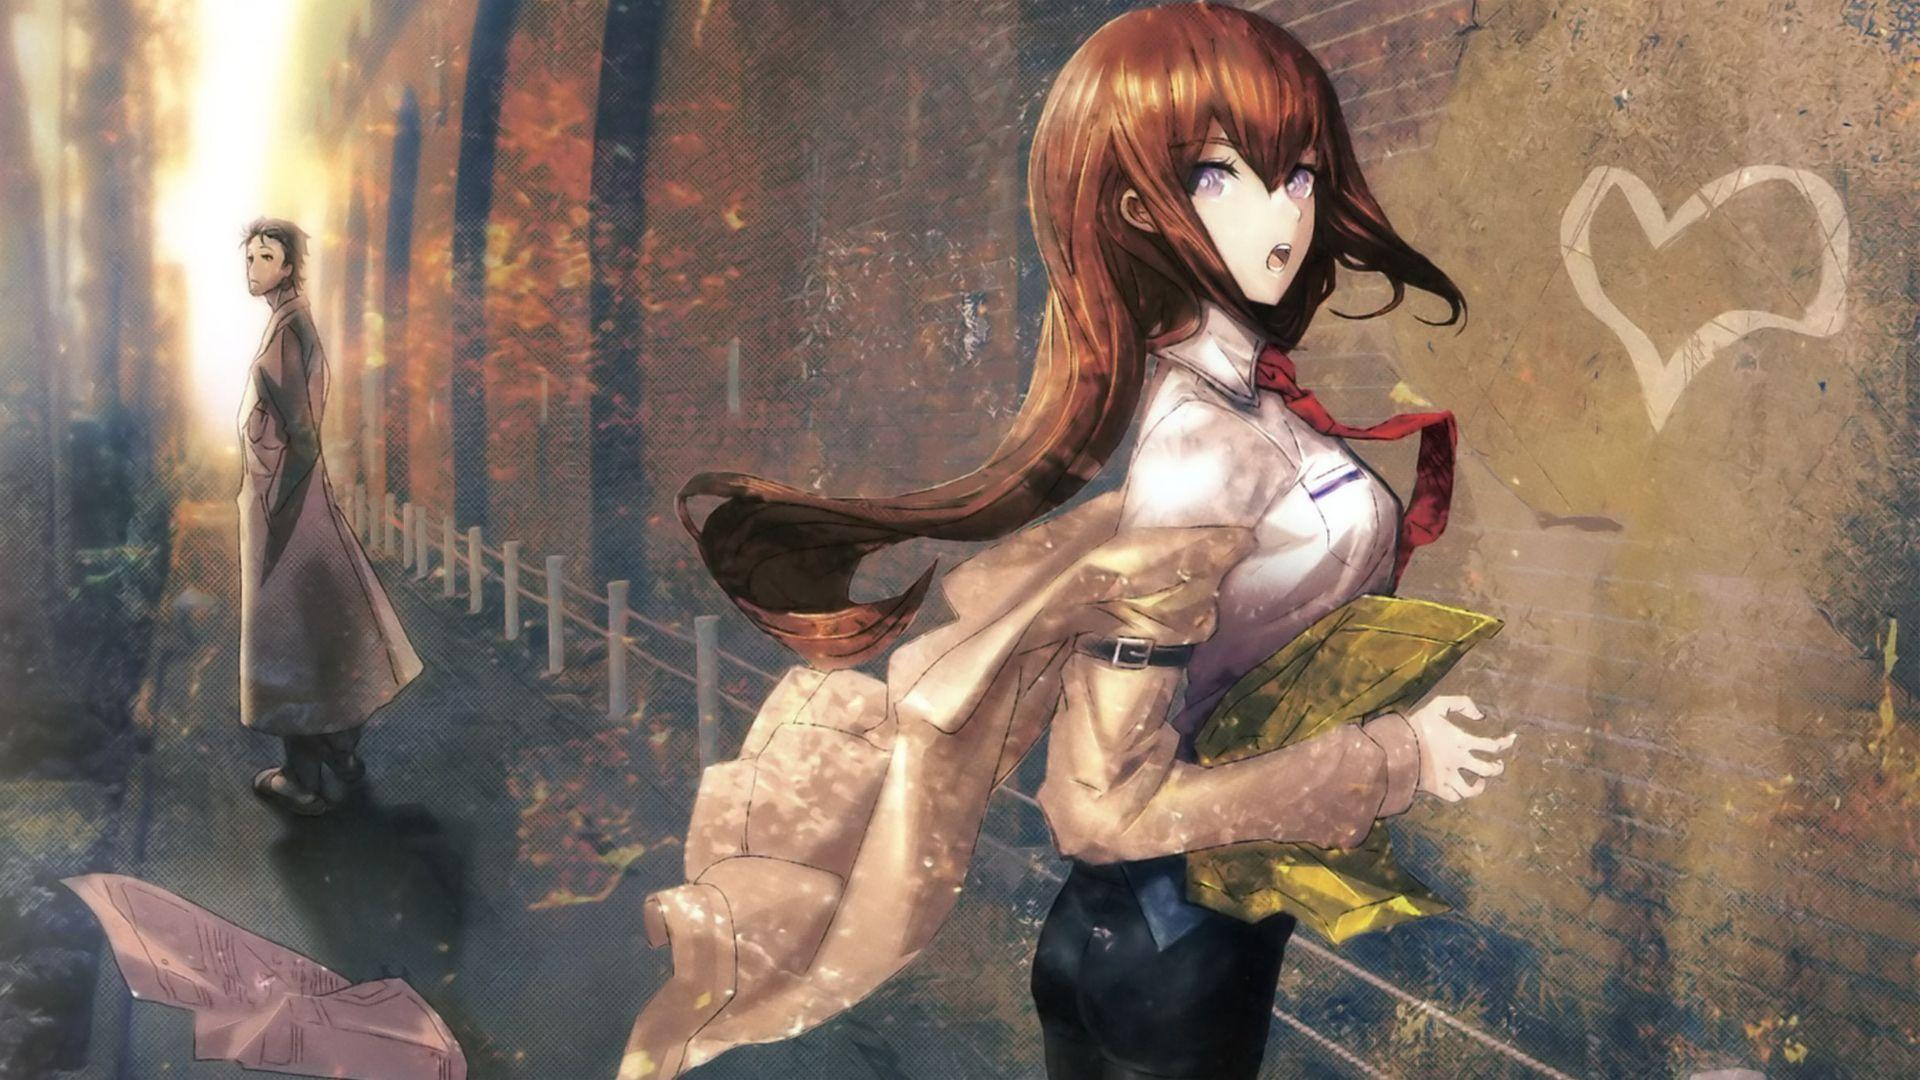 Kurisu Makise 28 Anime Wallpapers